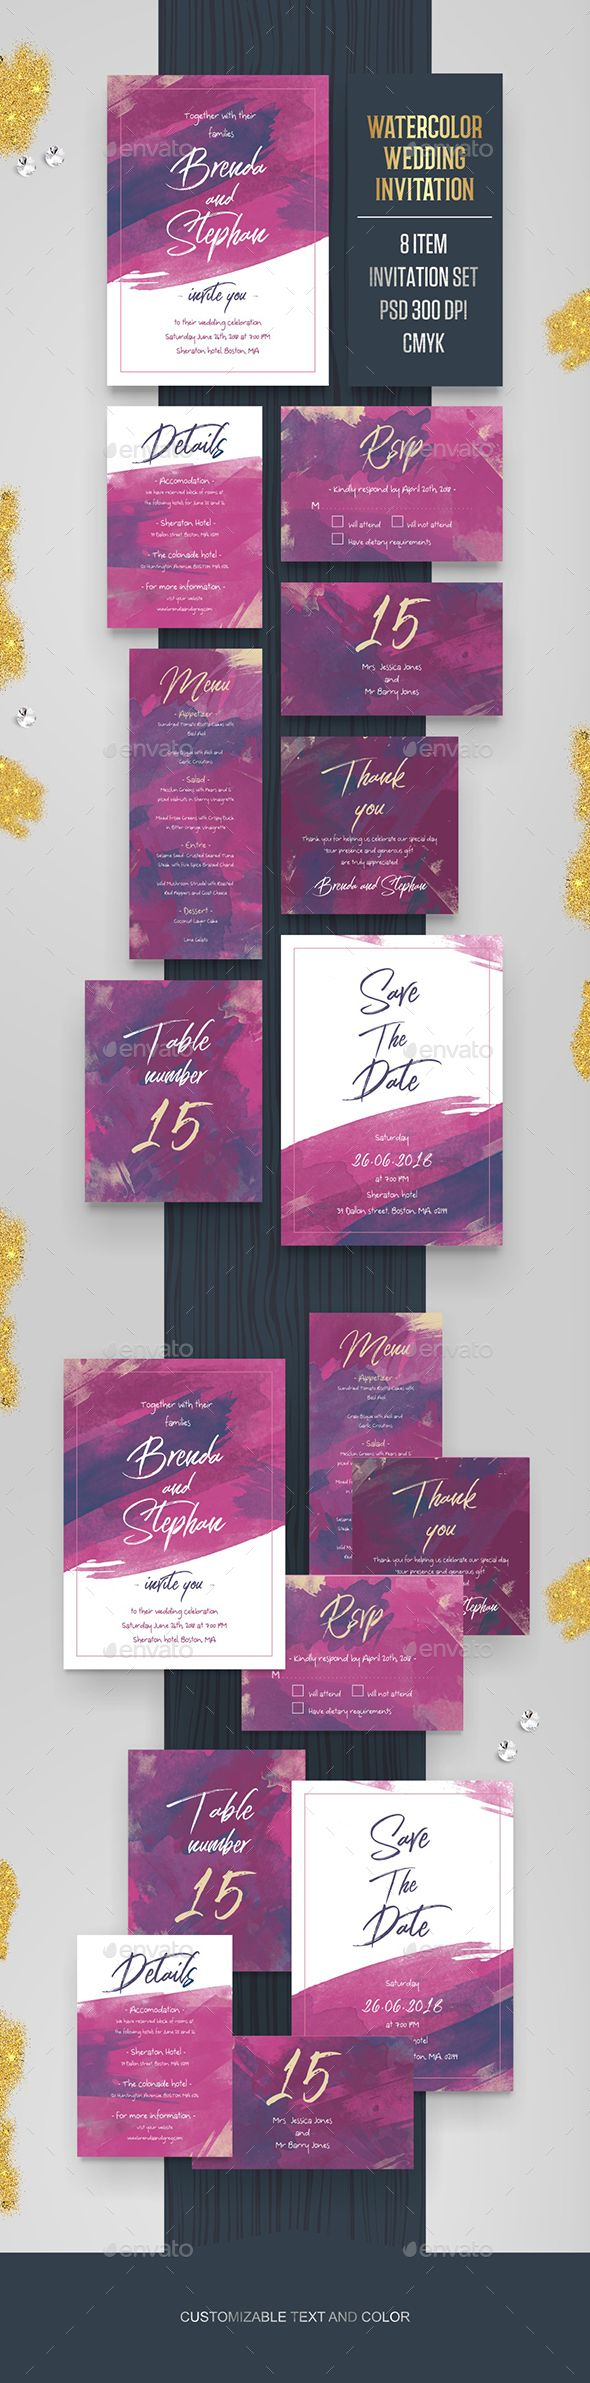 wedding invitation formats%0A Formal Official Letter Writing Format